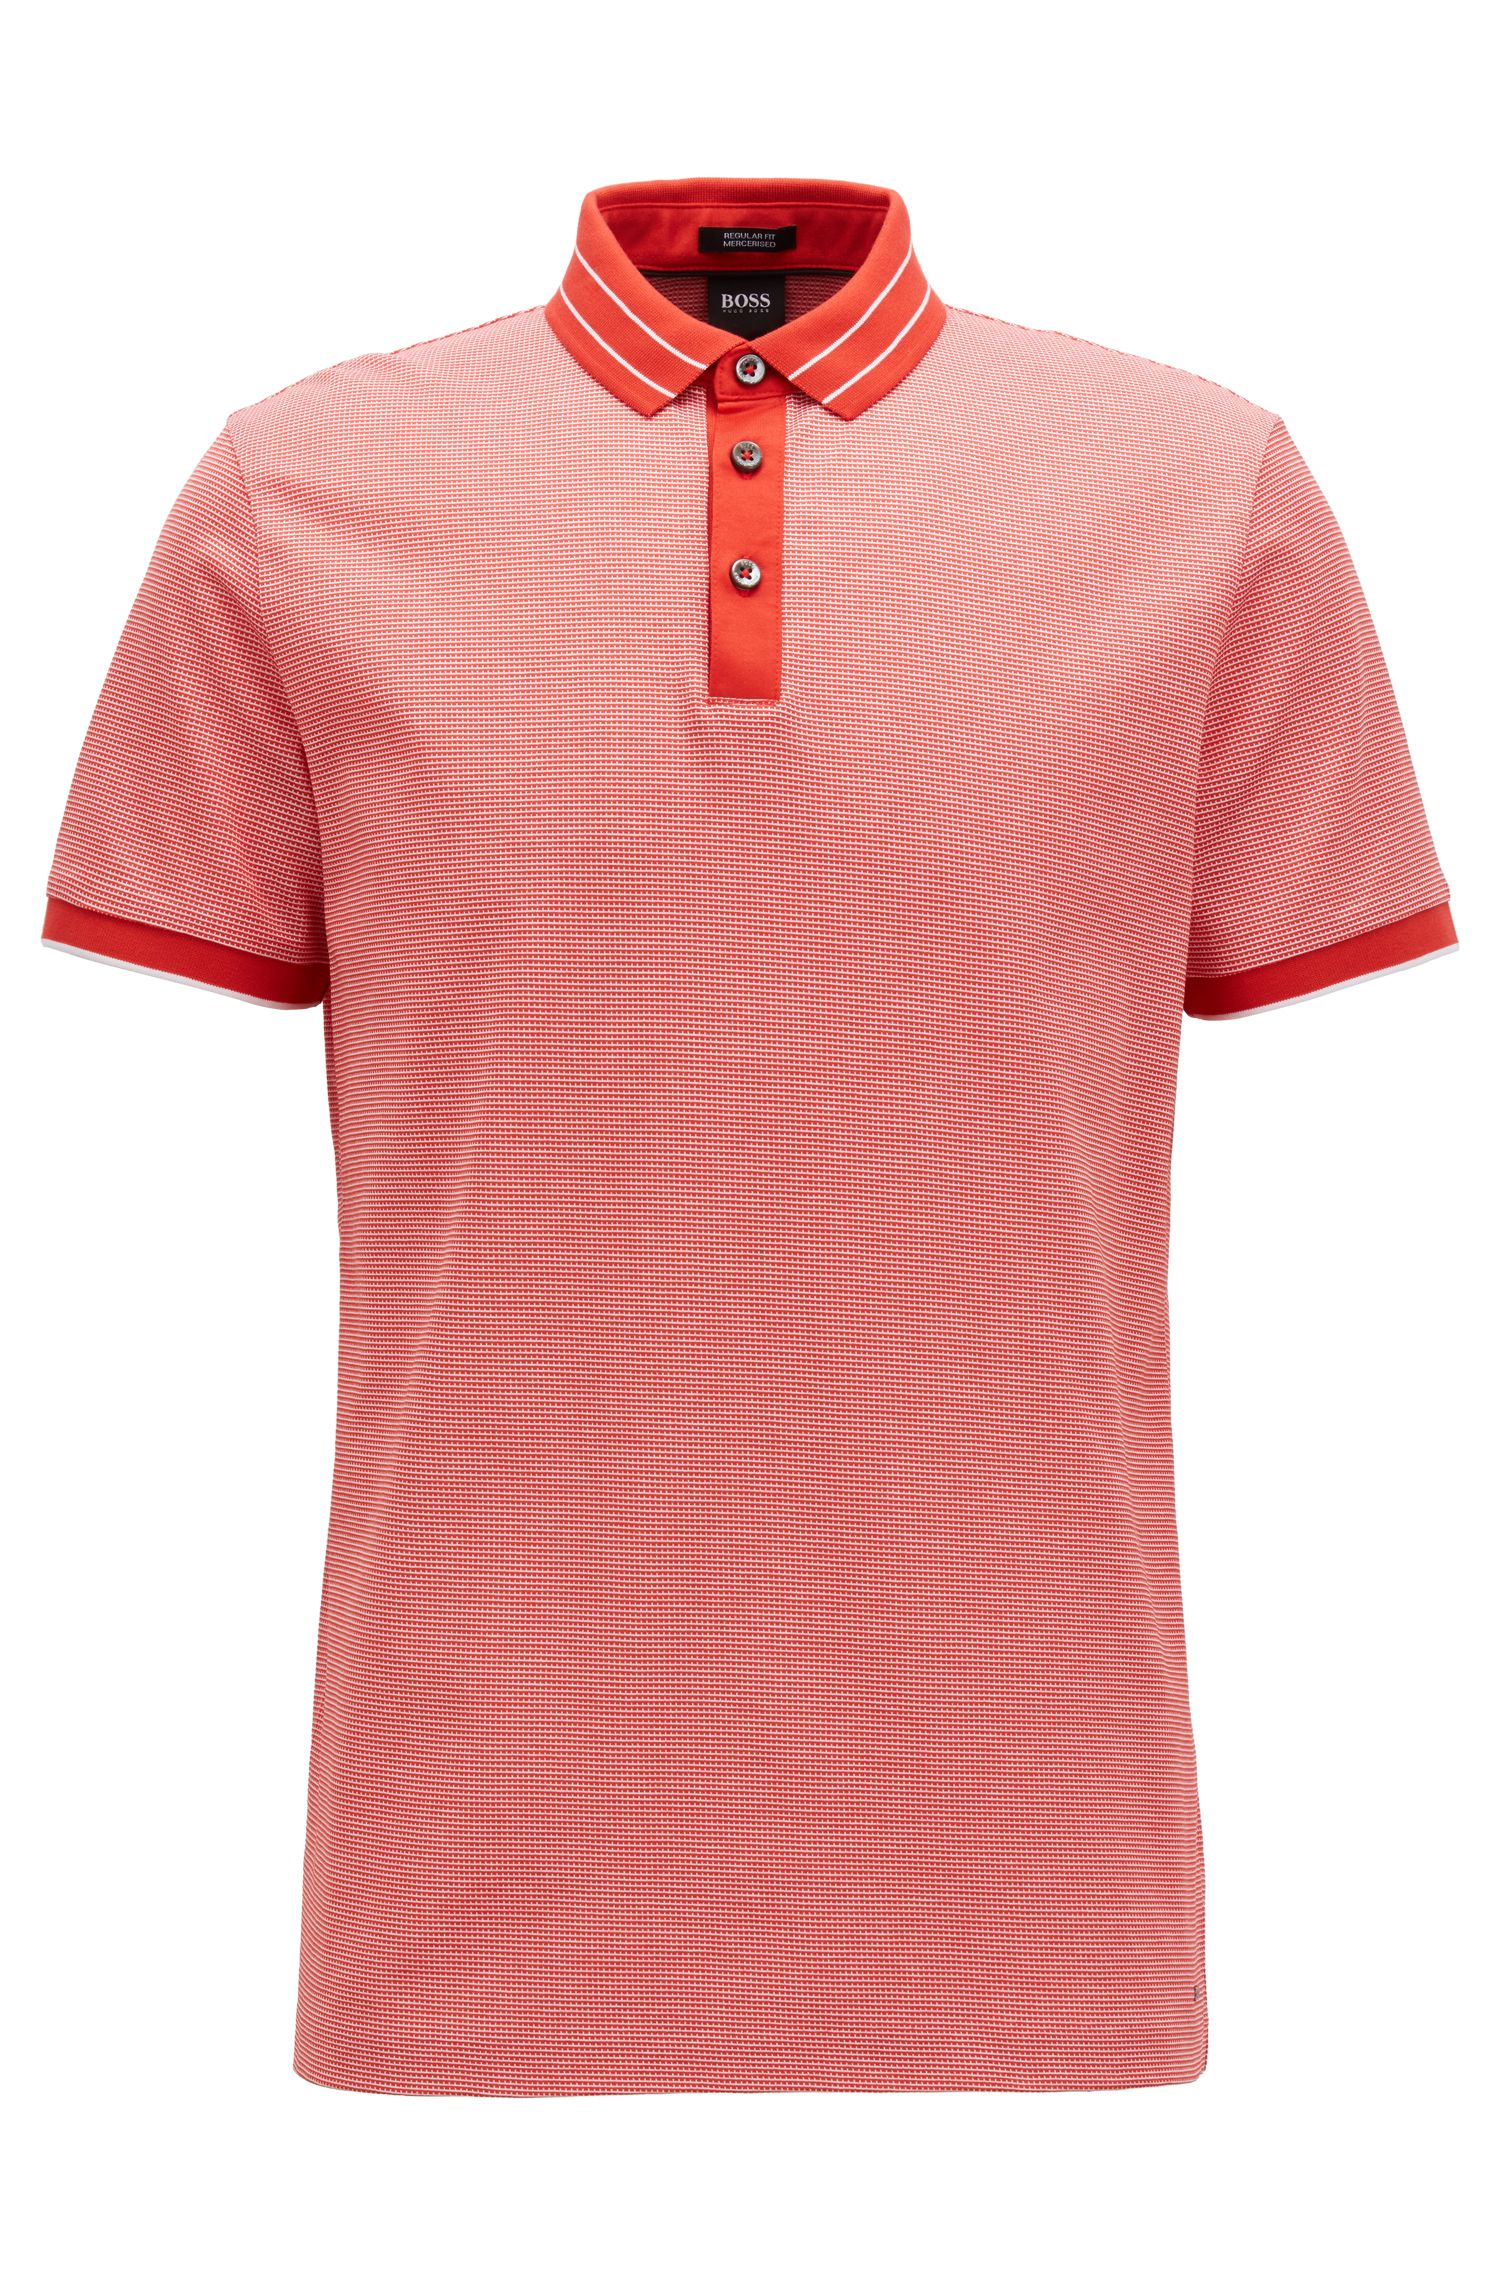 Micro-pattern polo shirt in mercerised cotton jacquard